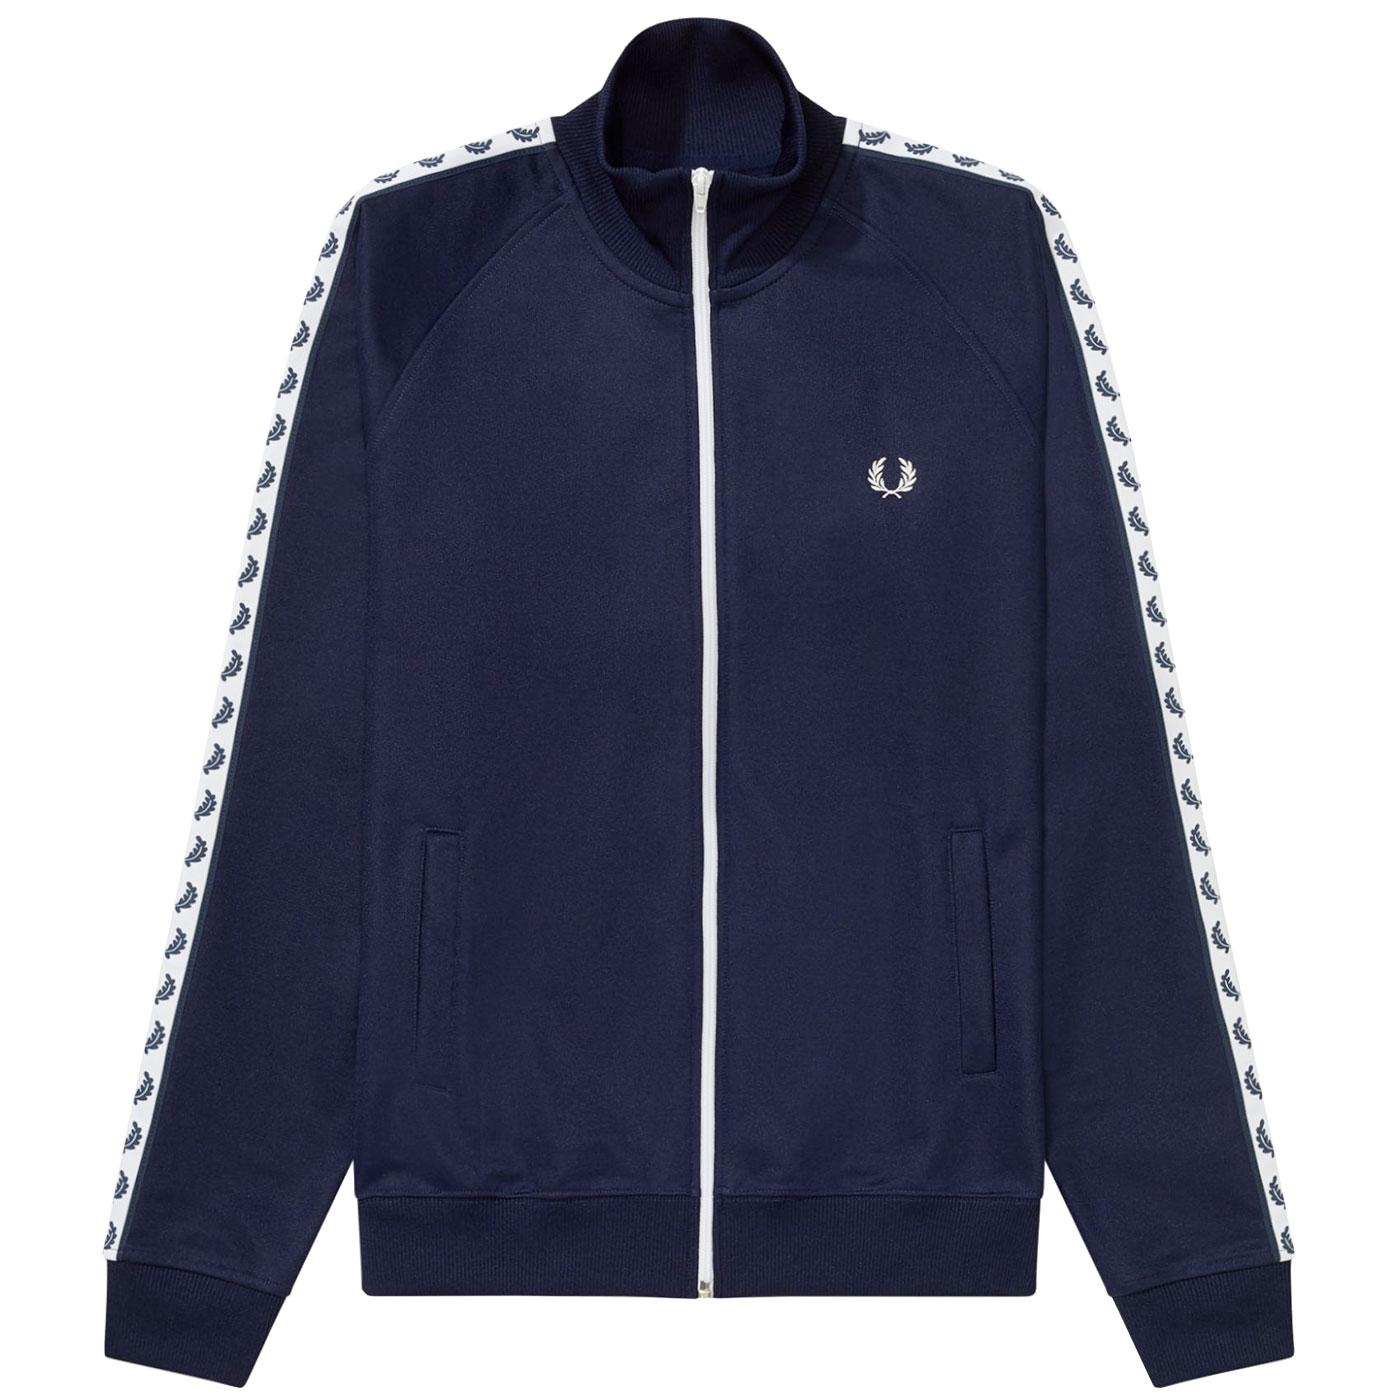 FRED PERRY Mens Laurel Wreath Tape Track Jacket CB